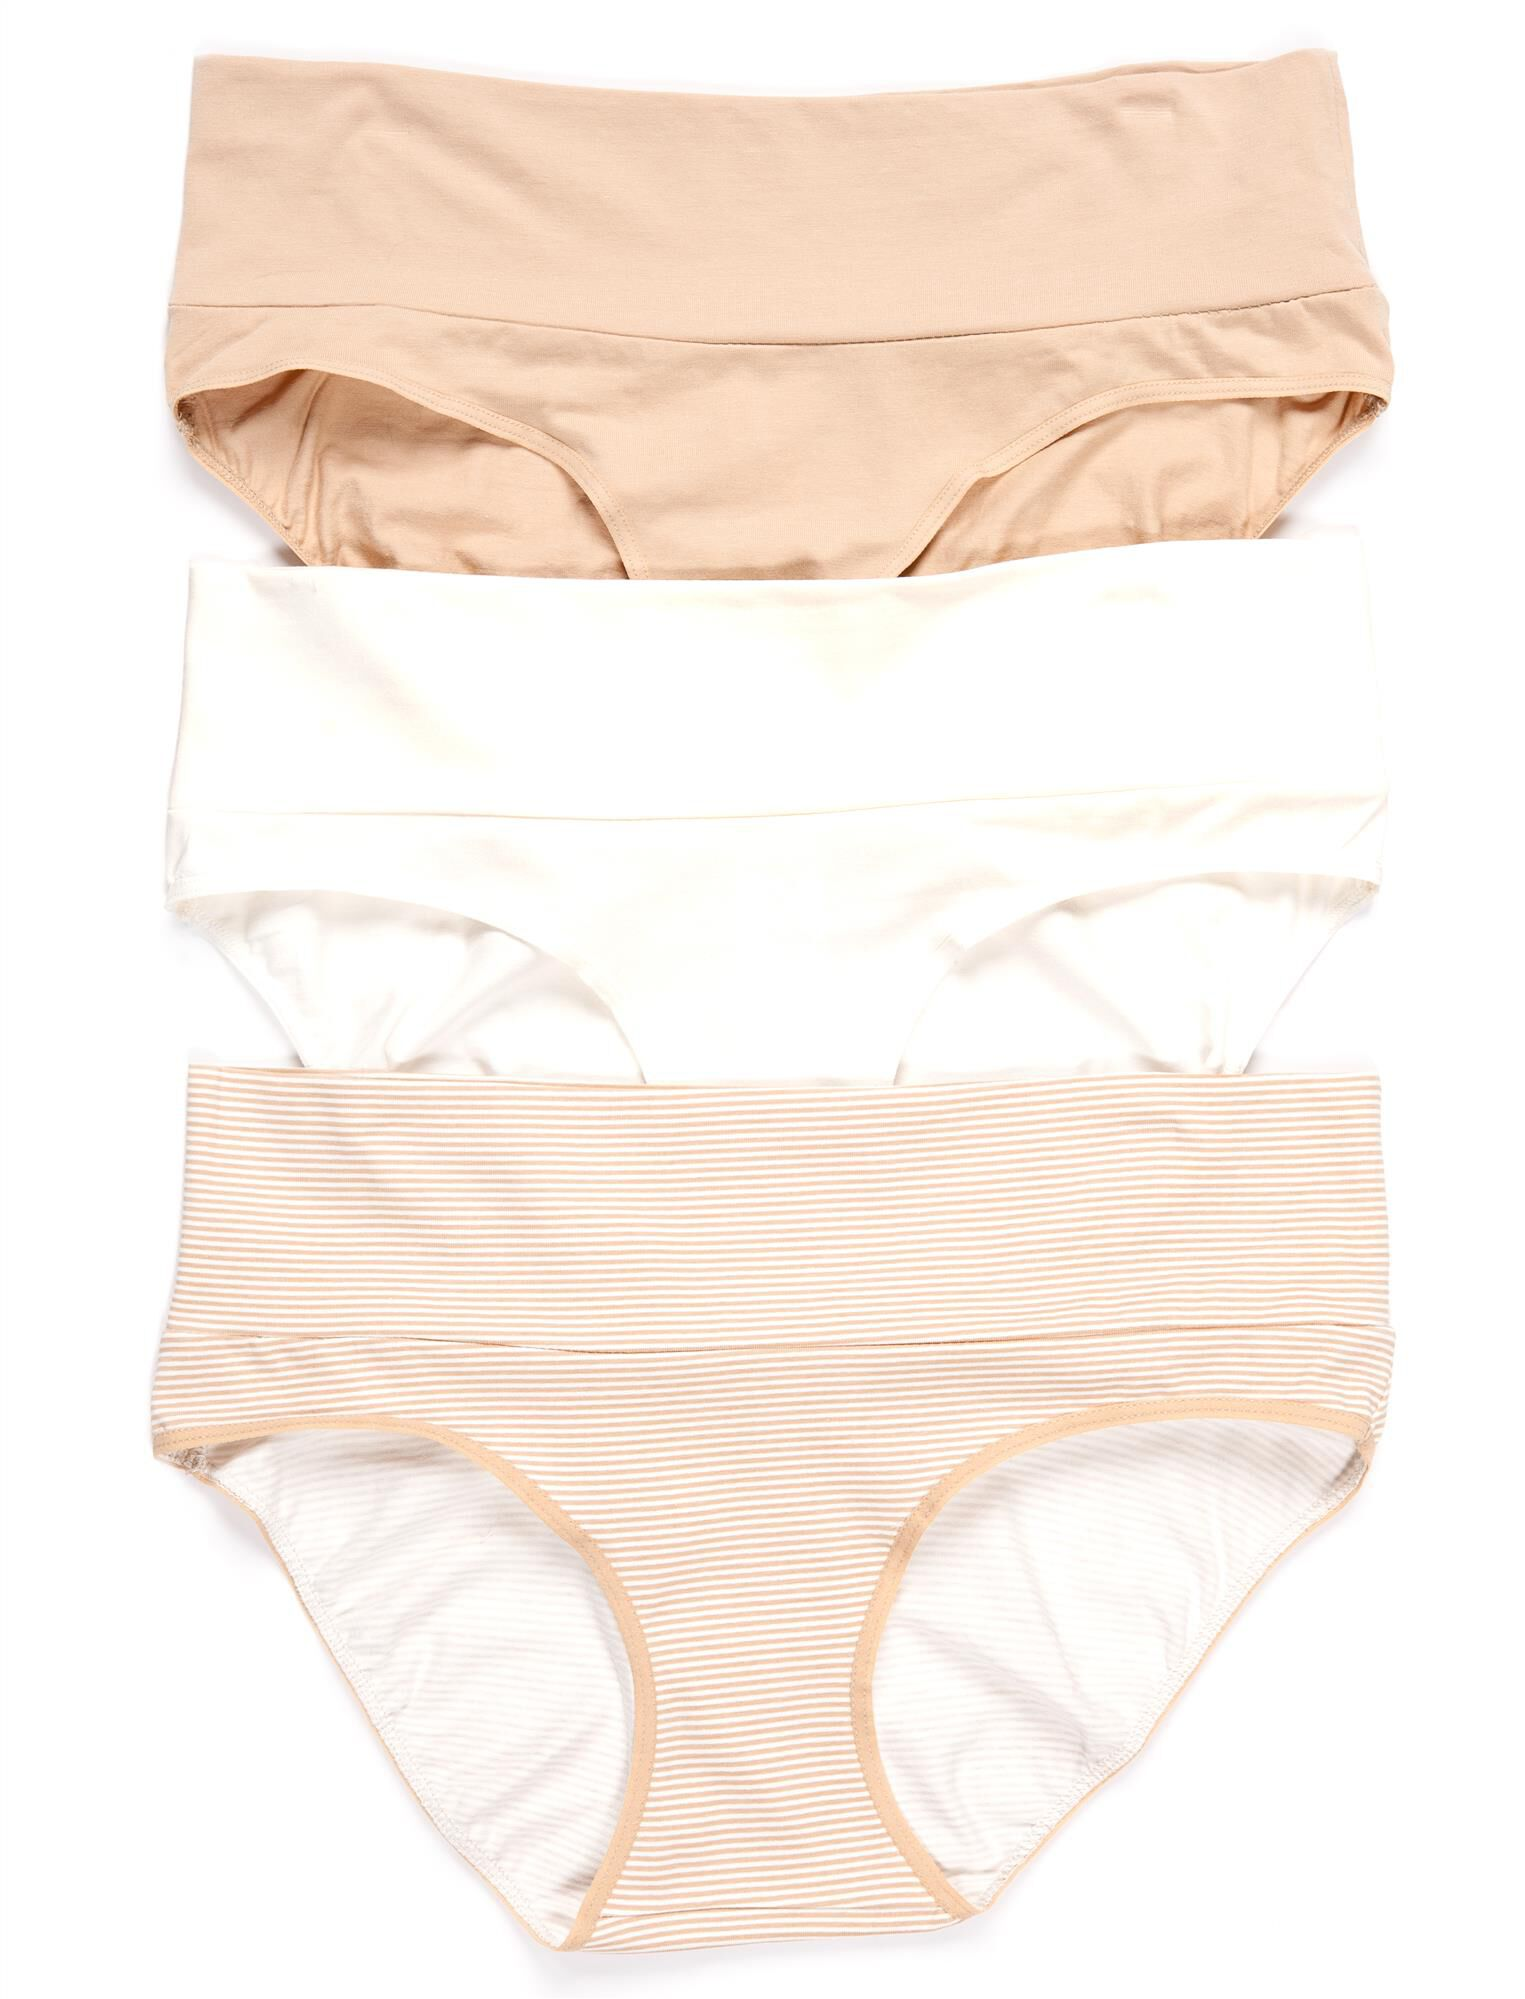 Maternity Fold Over Panties (3 Pack)- Nudes